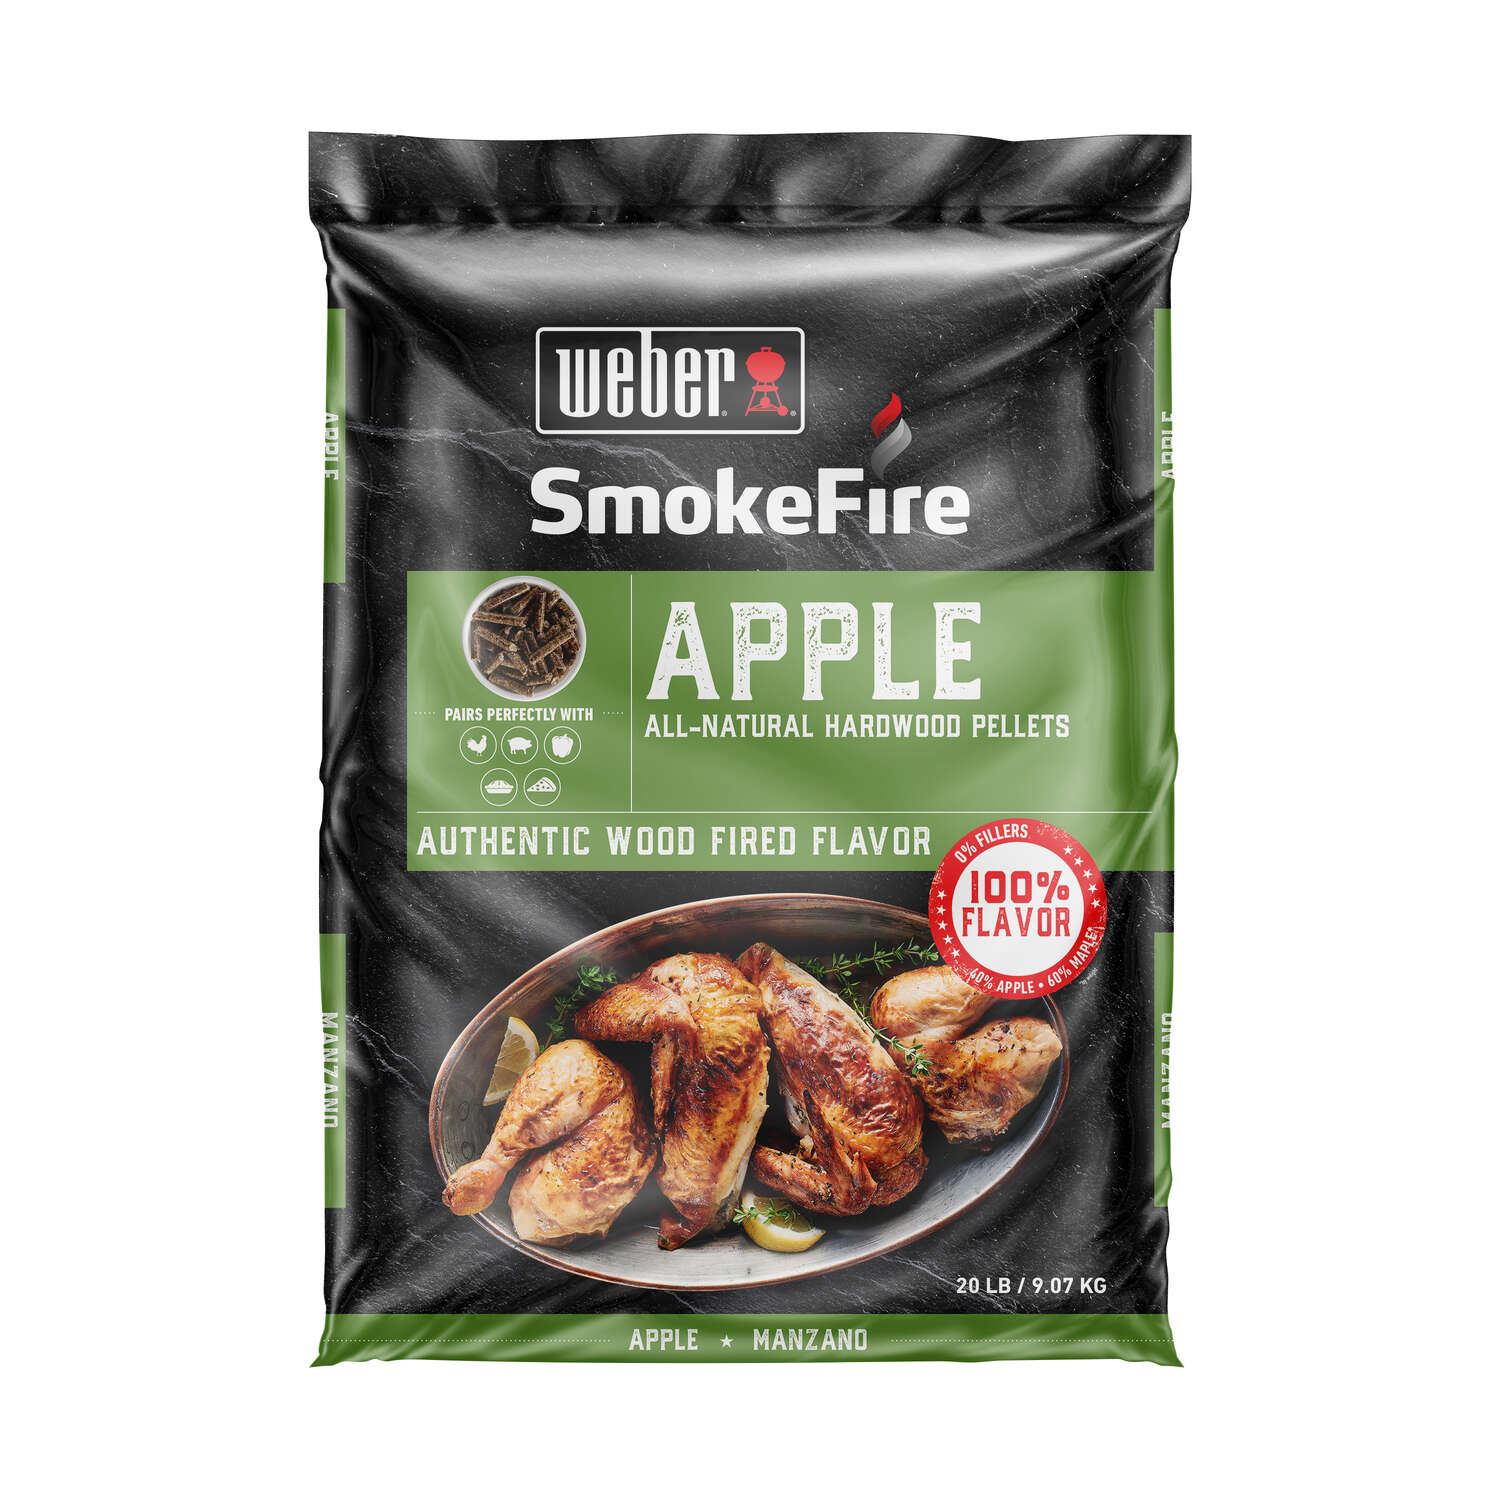 Weber SmokeFire Apple Hardwood Pellets 20 lb.